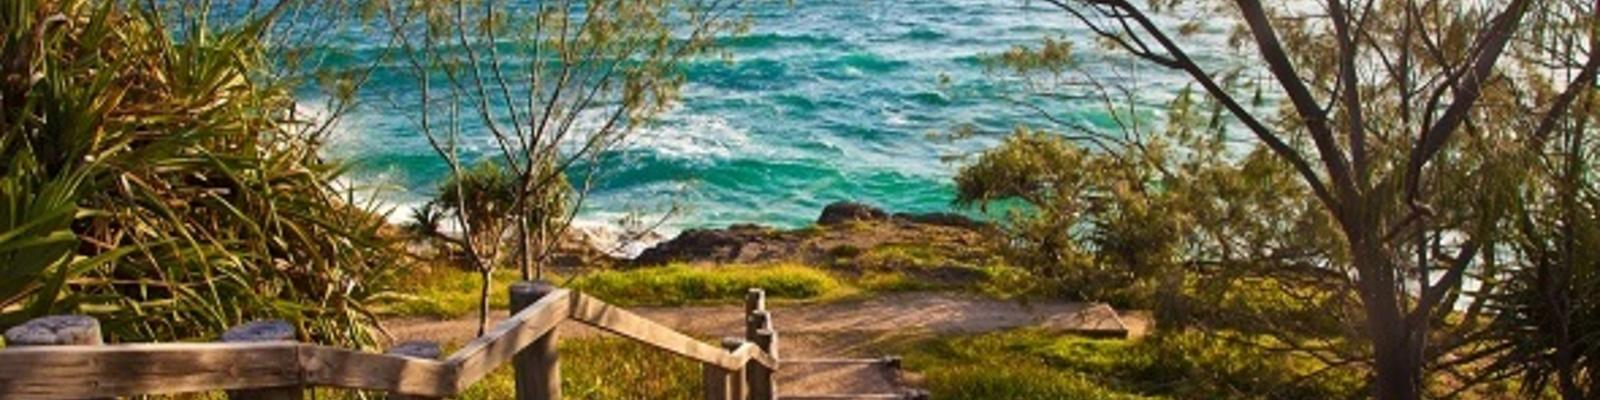 7 Camping spots to visit in QLD this Summer - Flight Centre